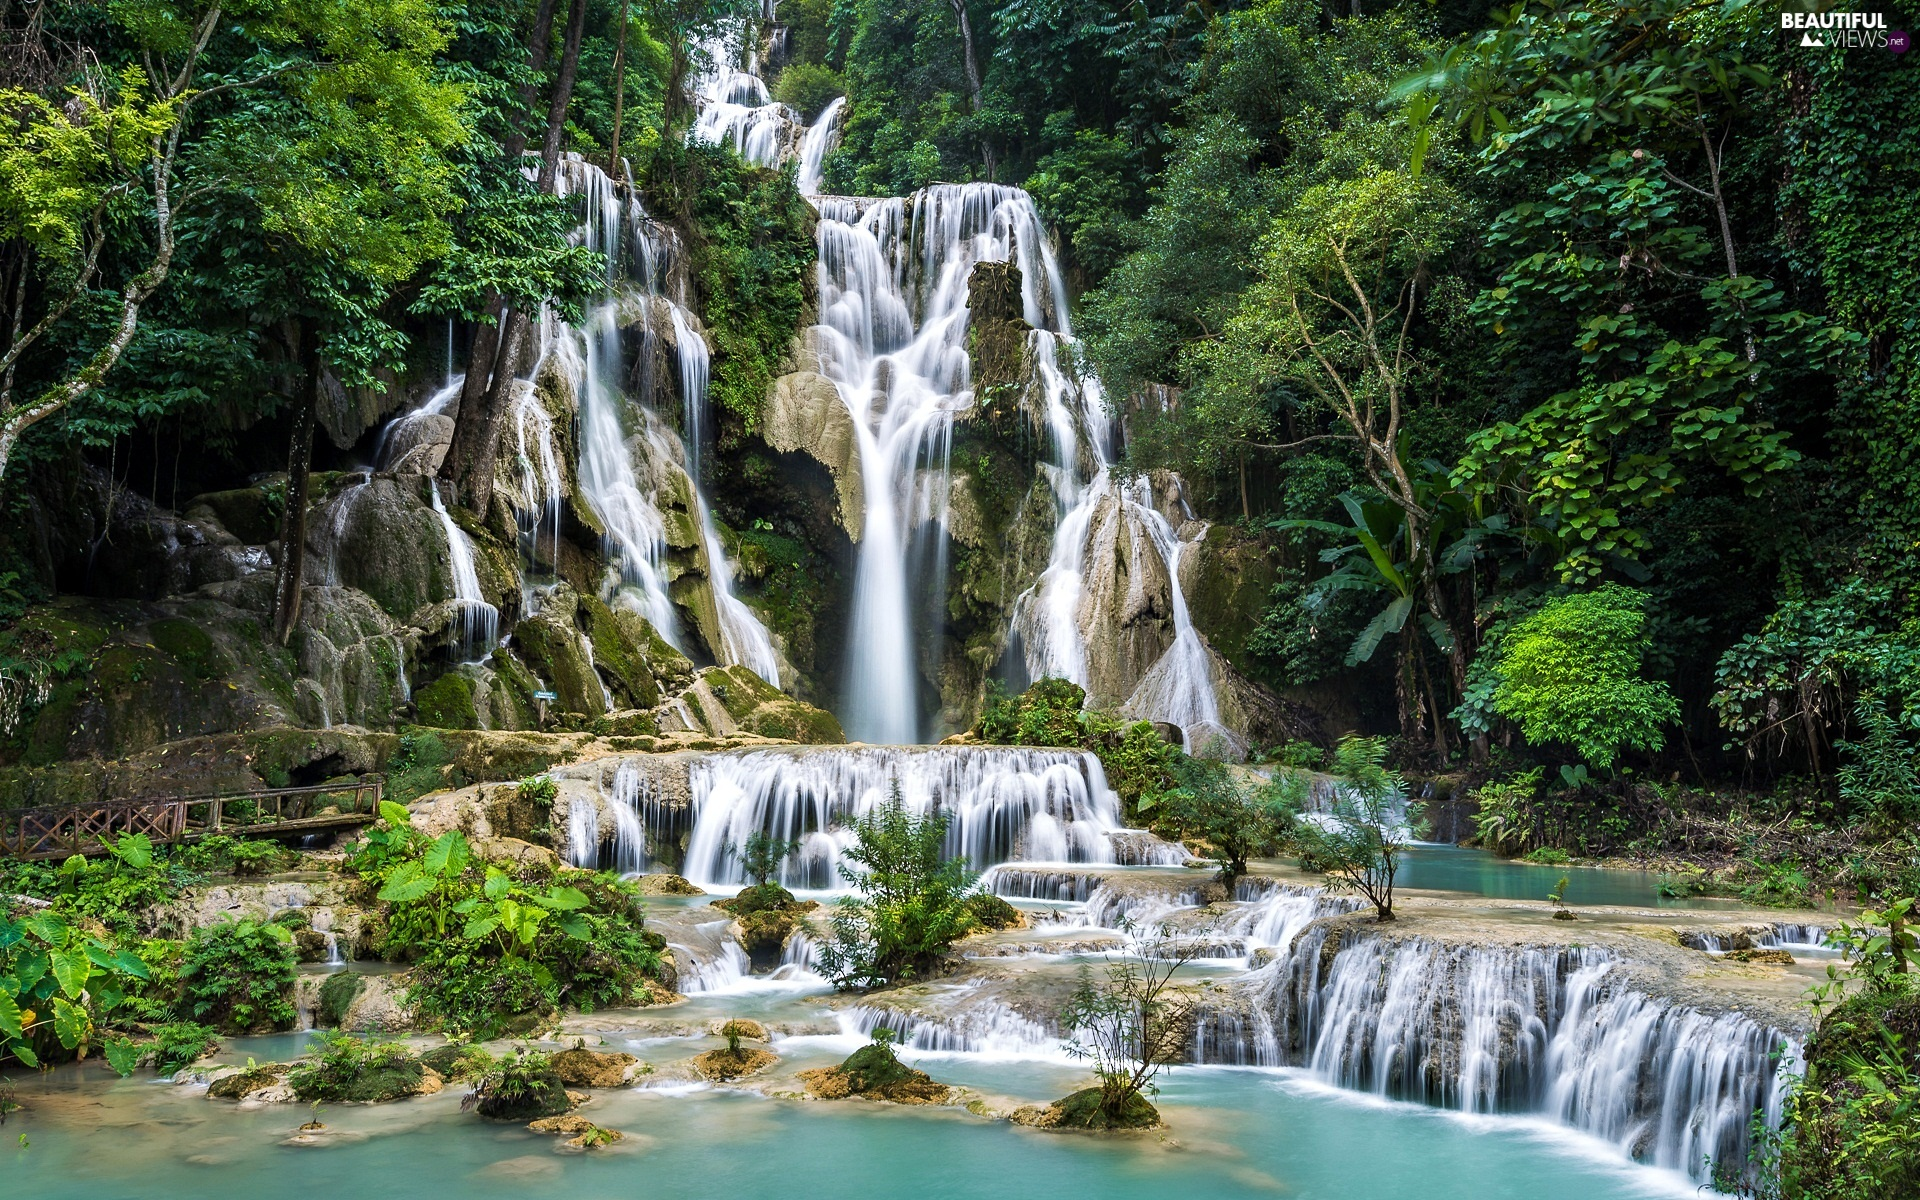 viewes, Kuang Si Waterfall, Province of Louangphrabang, Laos, cascade, trees